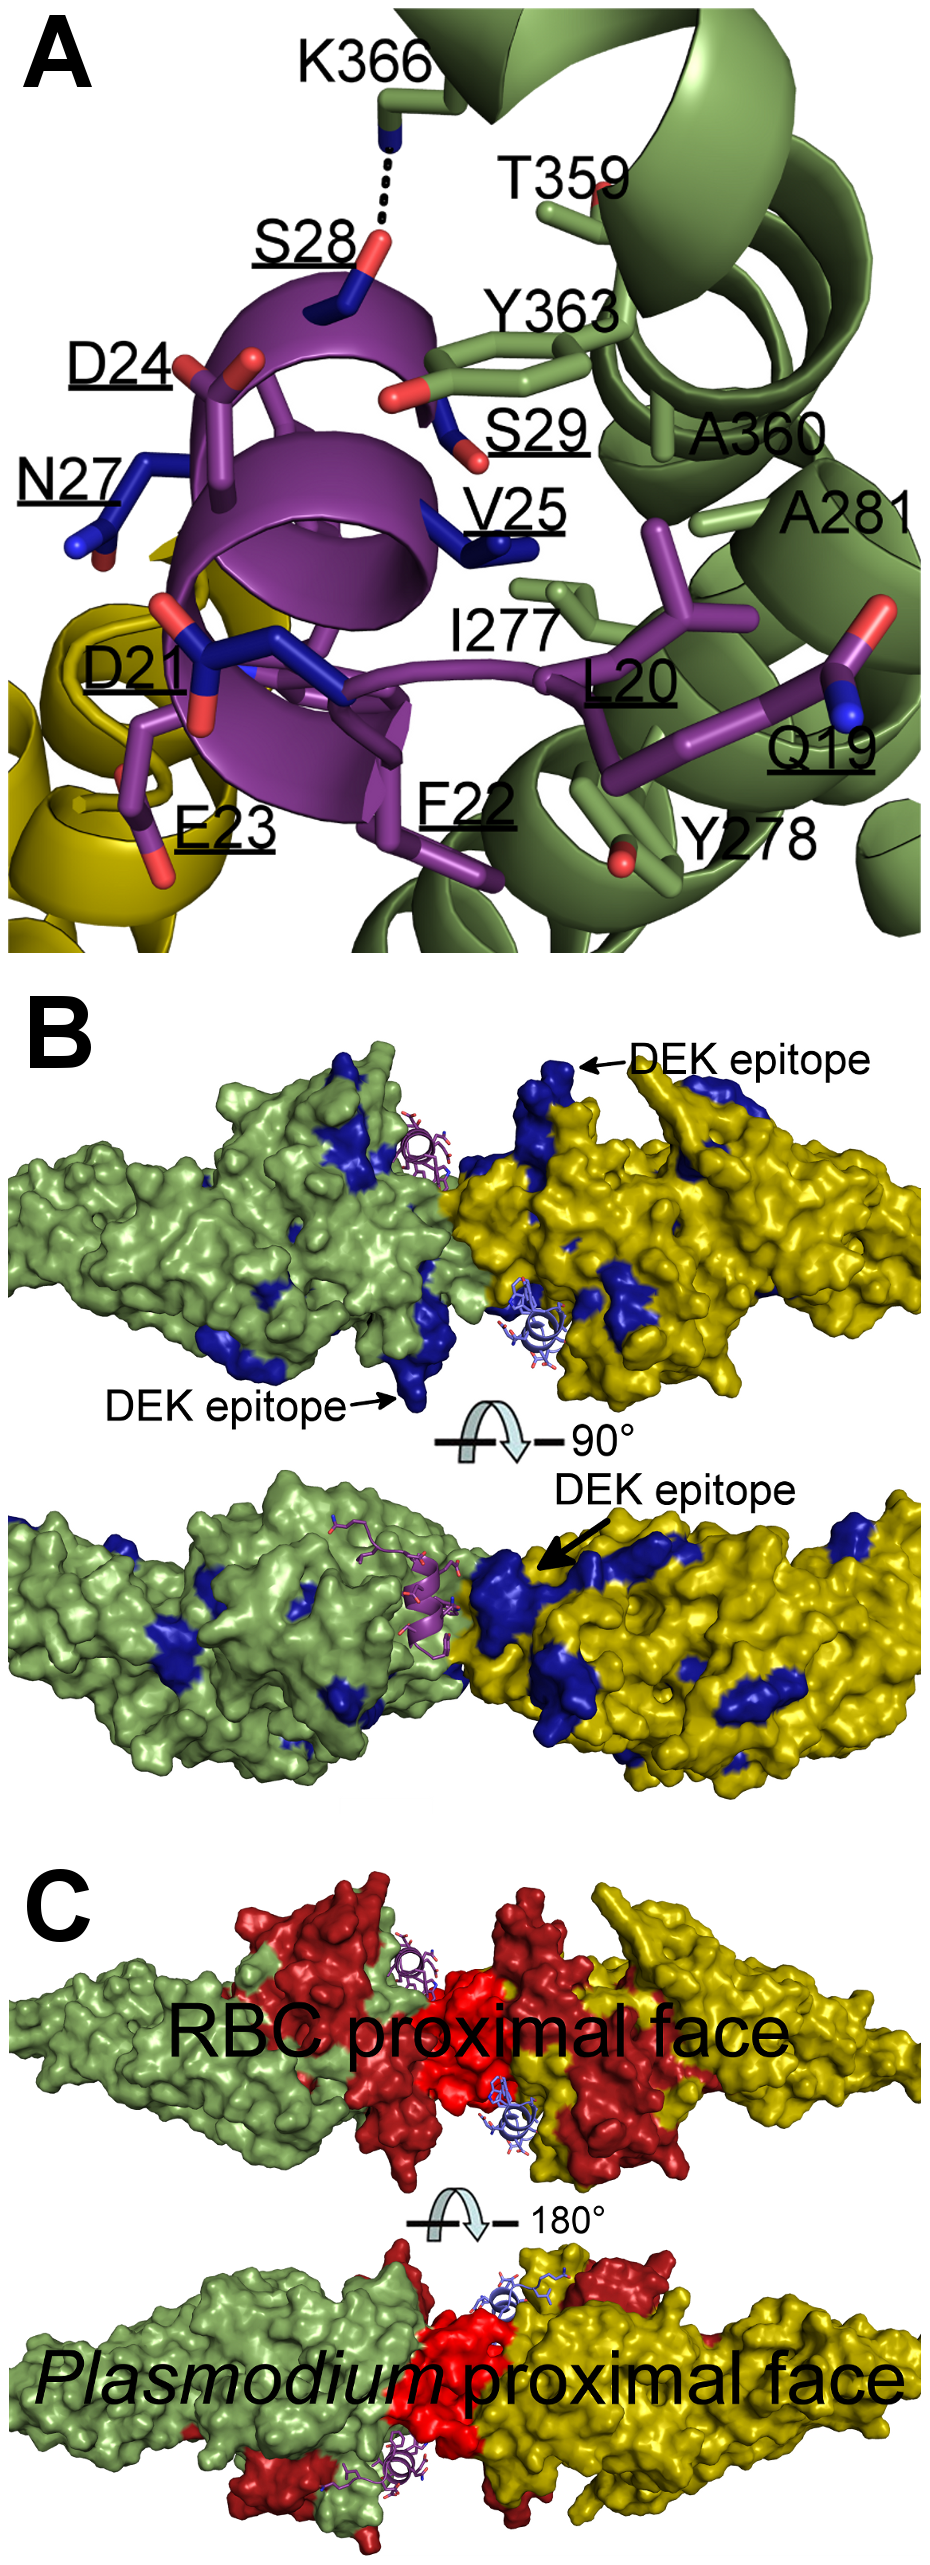 Mapping polymorphic residues and inhibitory epitopes reveals targets of selective pressure.